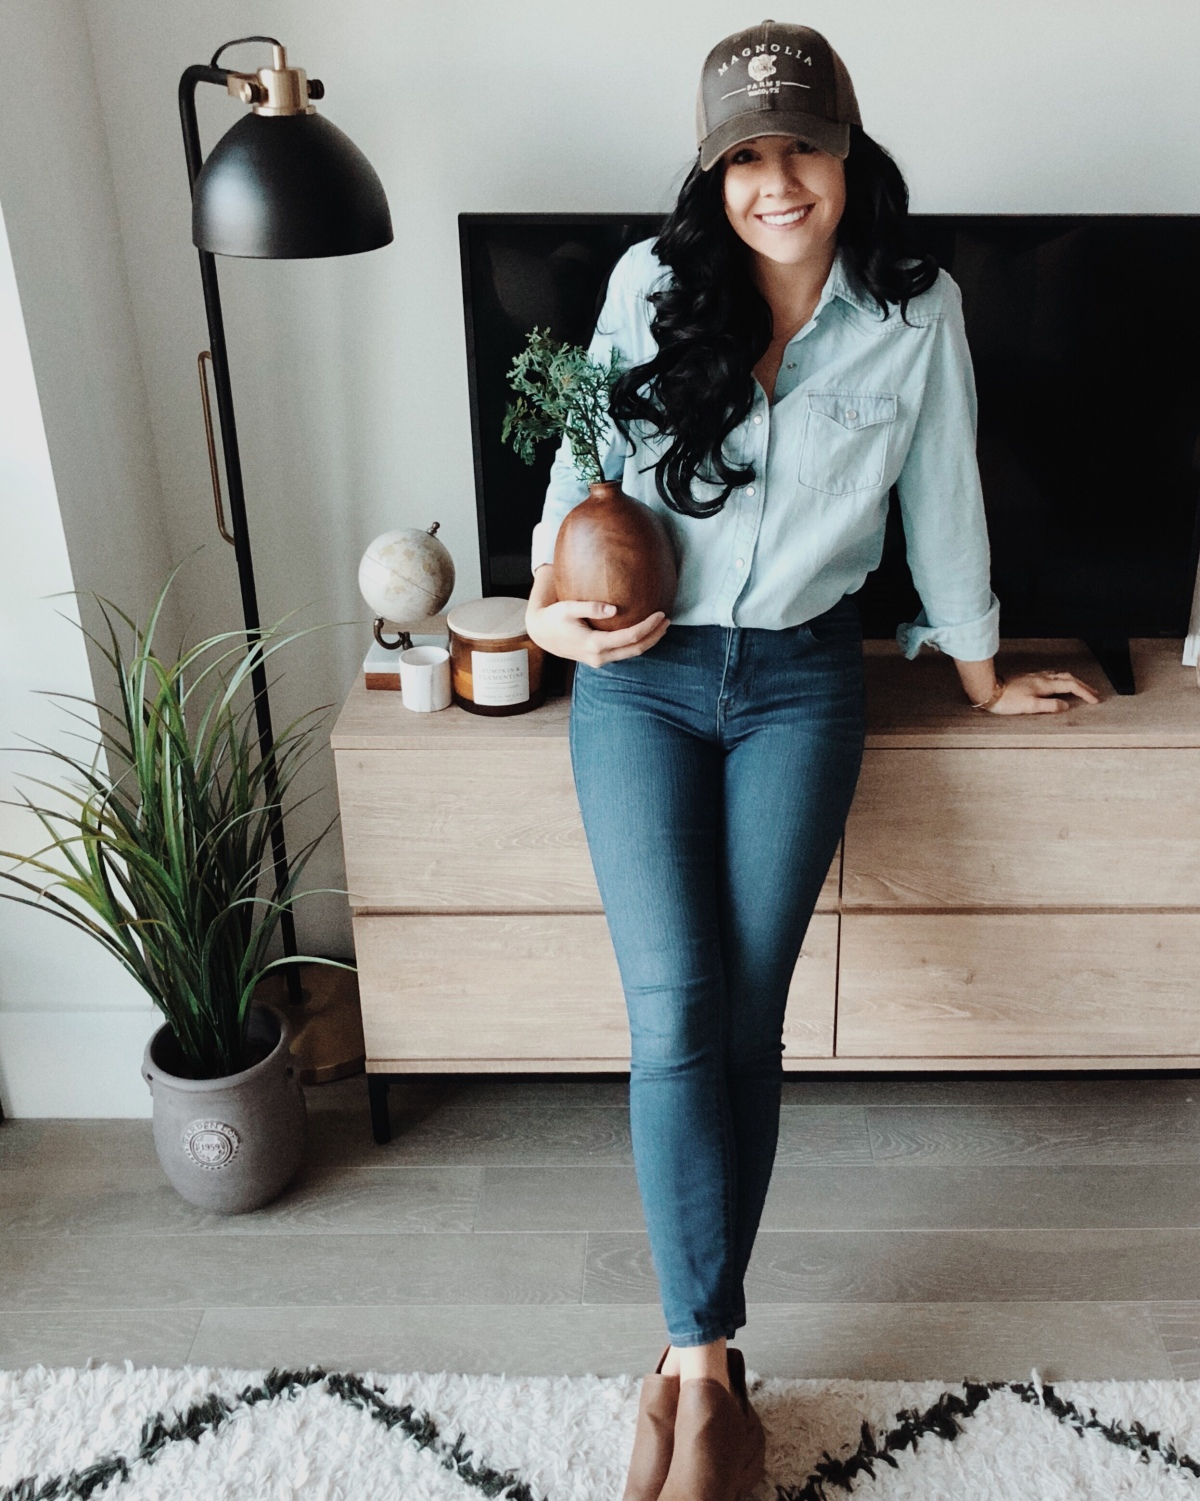 Are Y'all Ready to See Your FixerUpper?